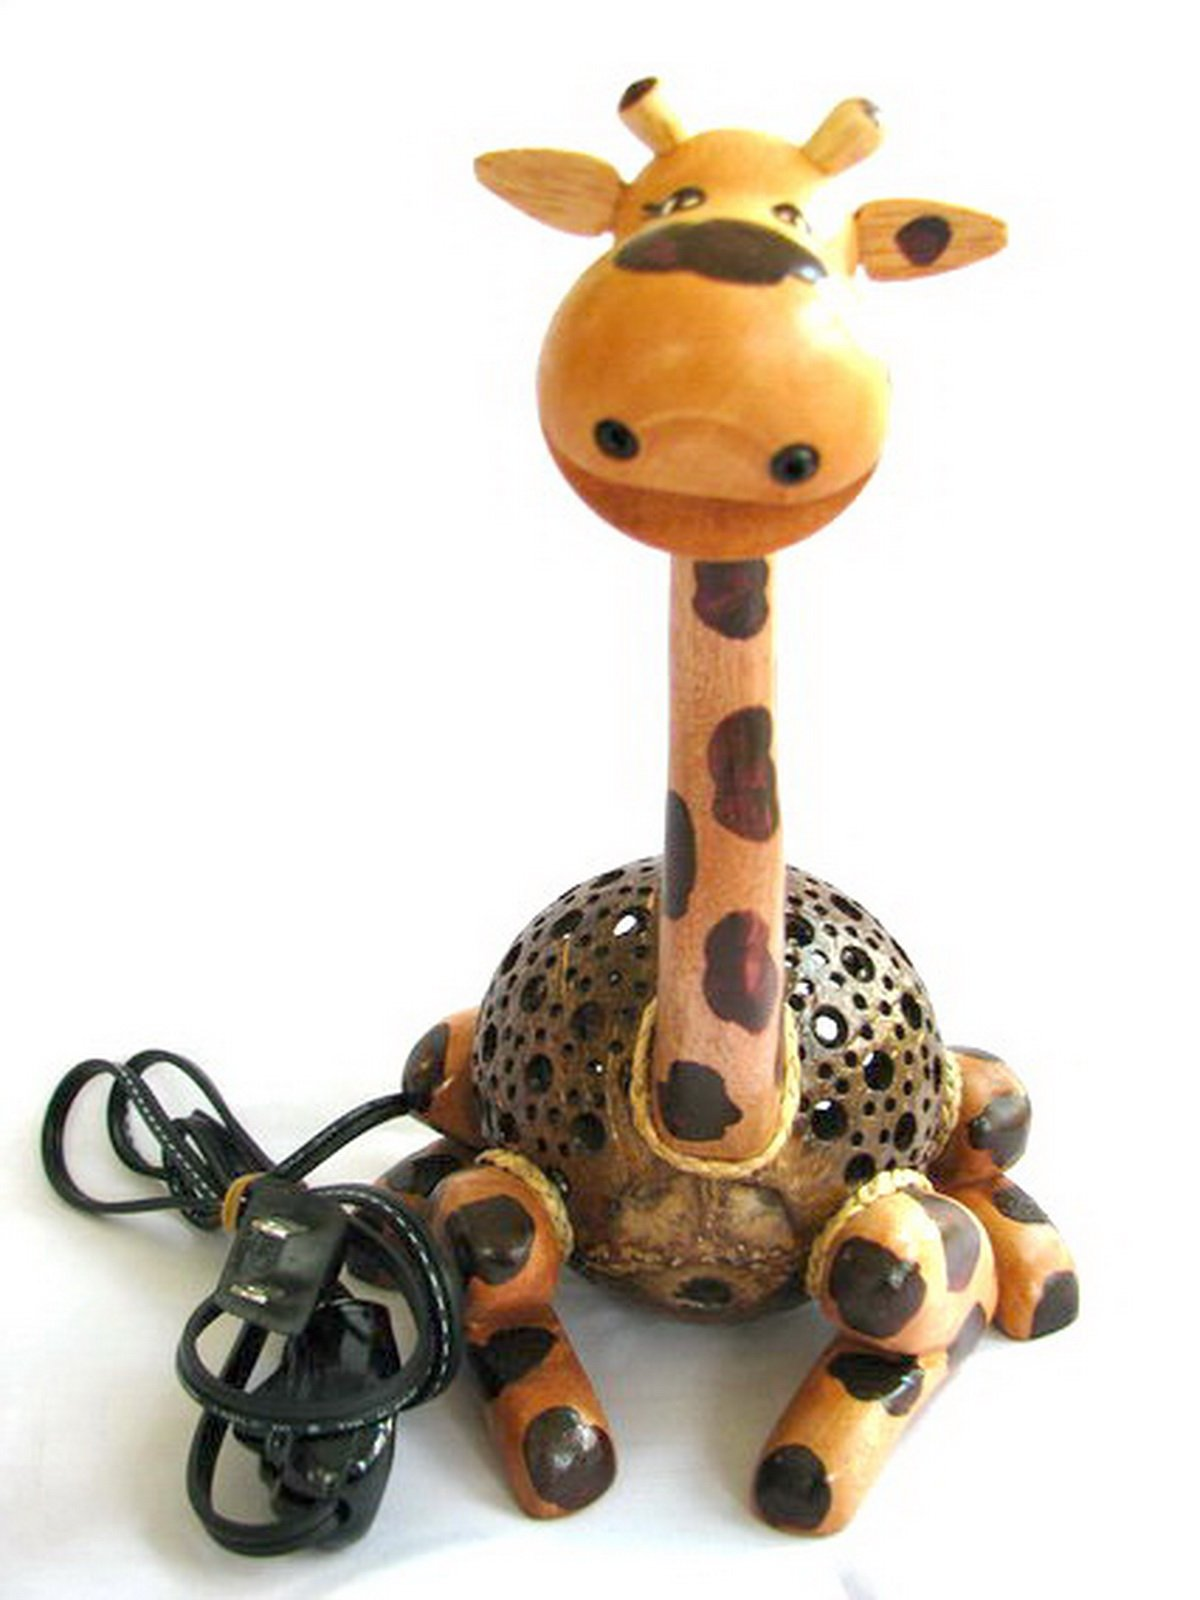 Coconut Shell Lamp - Giraffe Lamp 10'' Height - Wooden Crafts Handmade of Thailand Craftsman by Thailand Gifts Shop (Image #1)